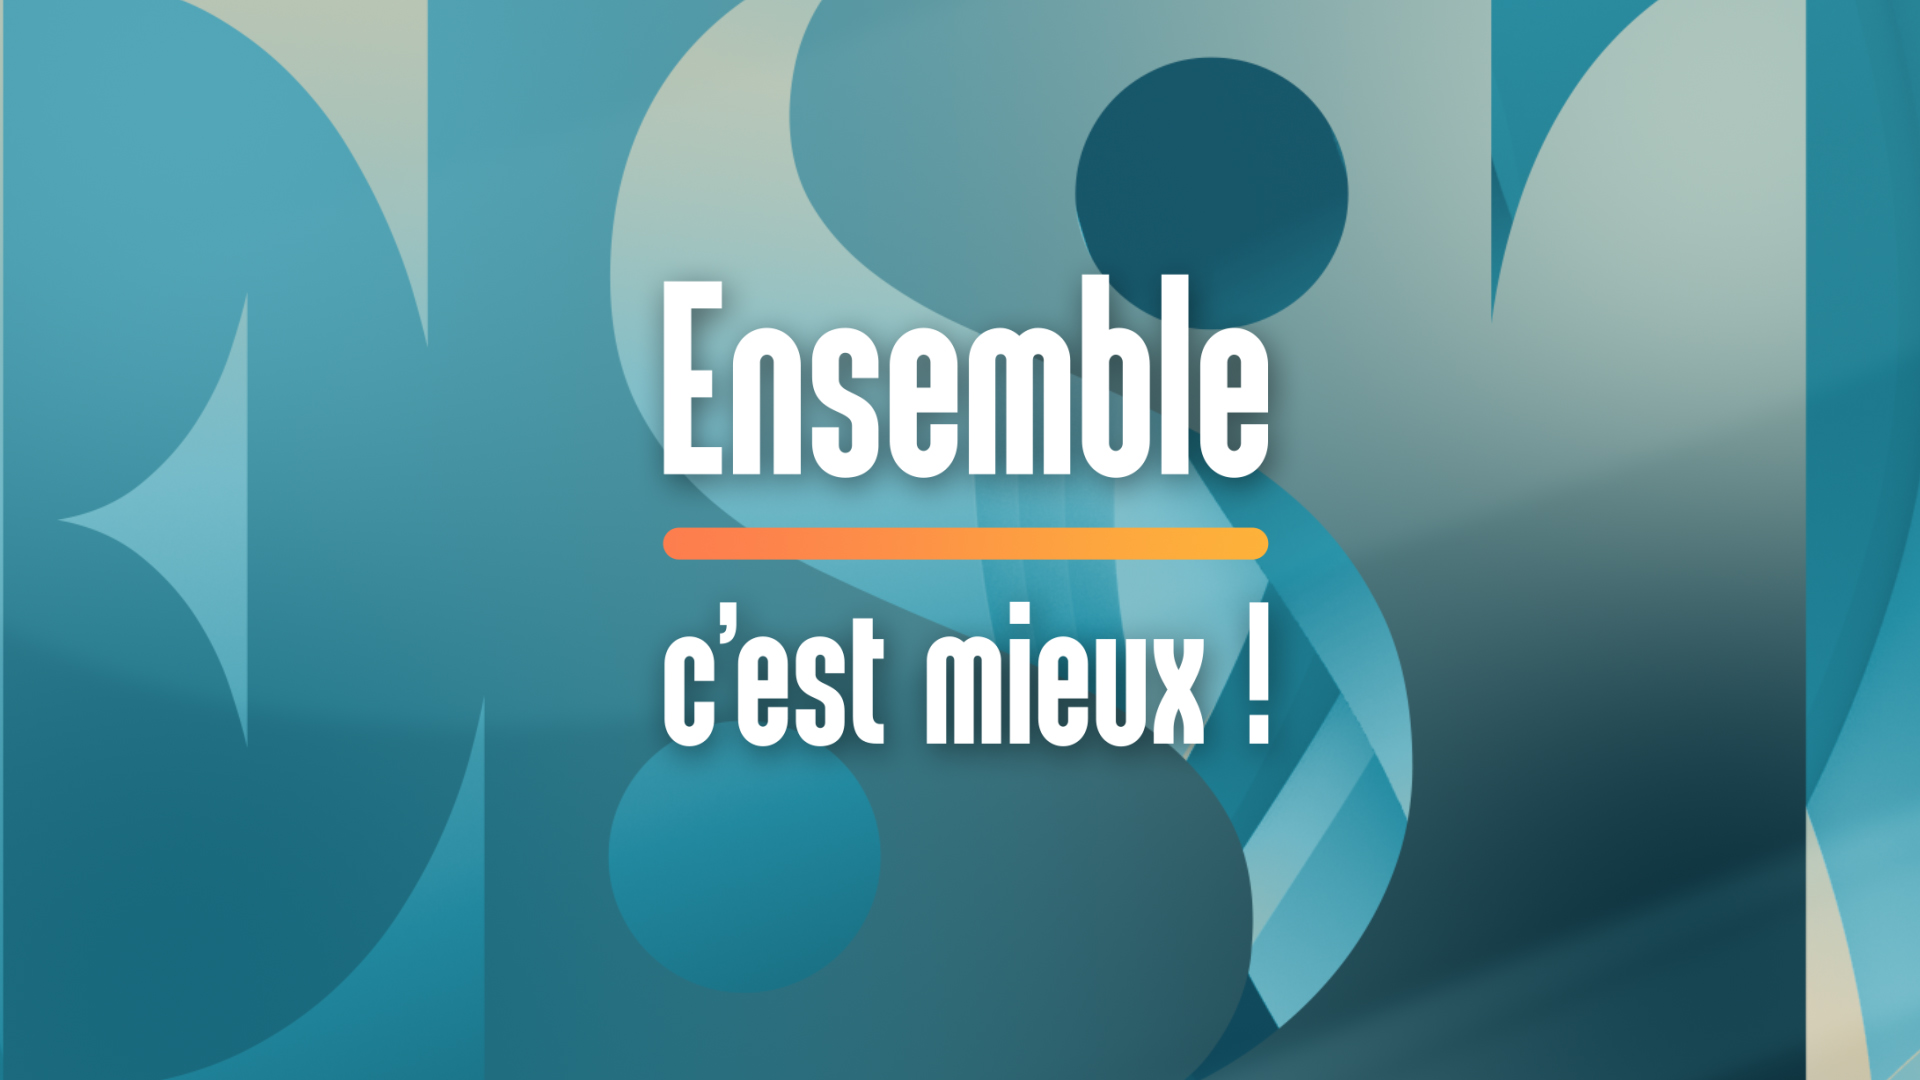 ECM_Generique_MASTER_0291 copie.jpg